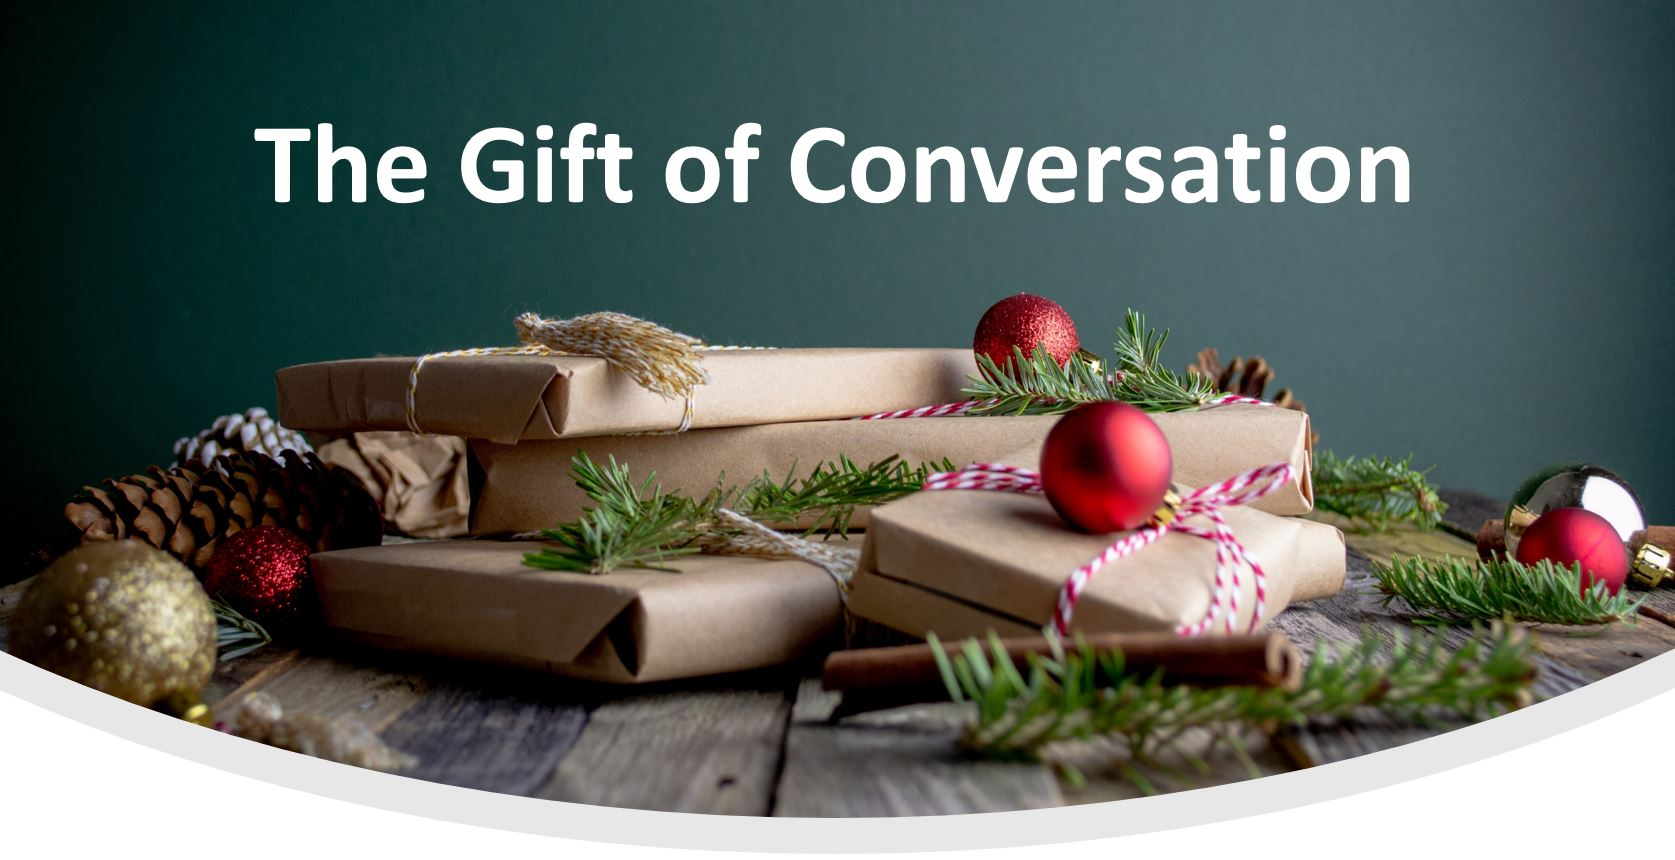 a Christmas background which says The gift of conversation